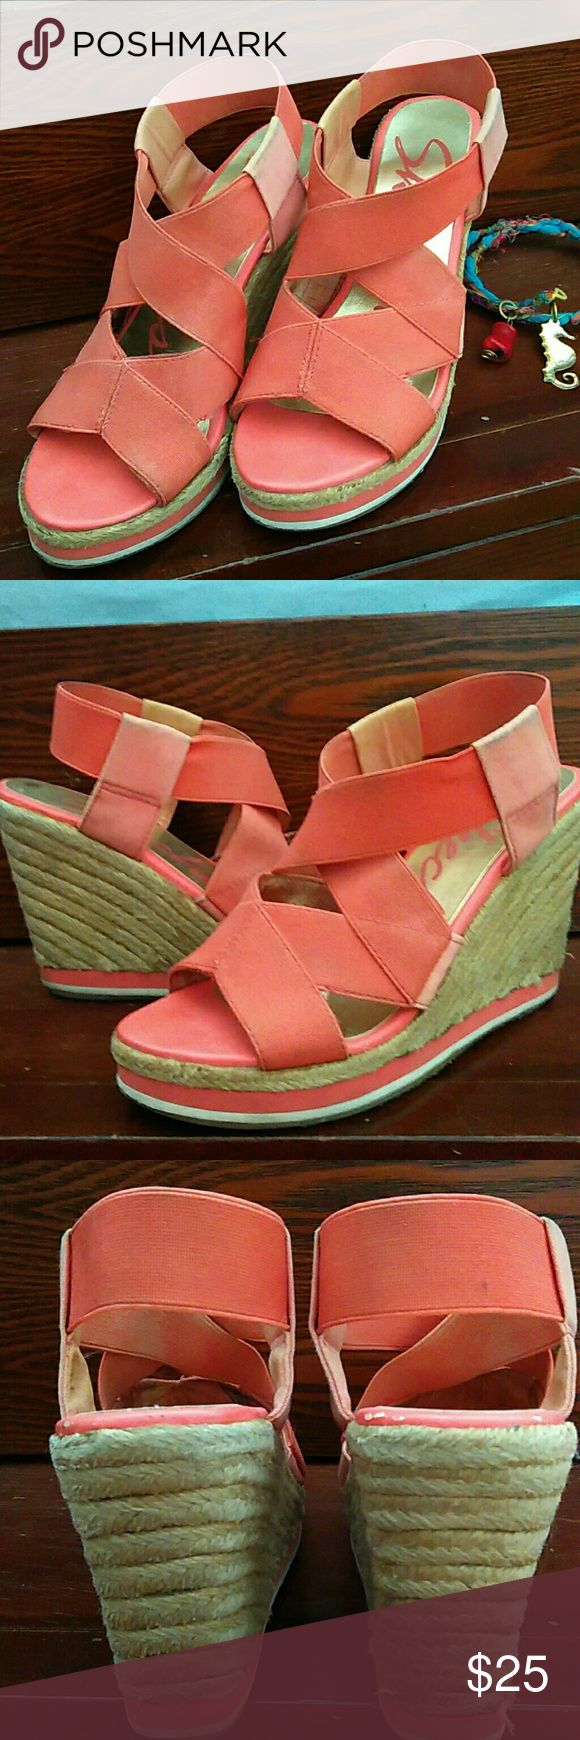 Skechers wedges In good condition... Loved this looks great! Skechers Shoes Wedges